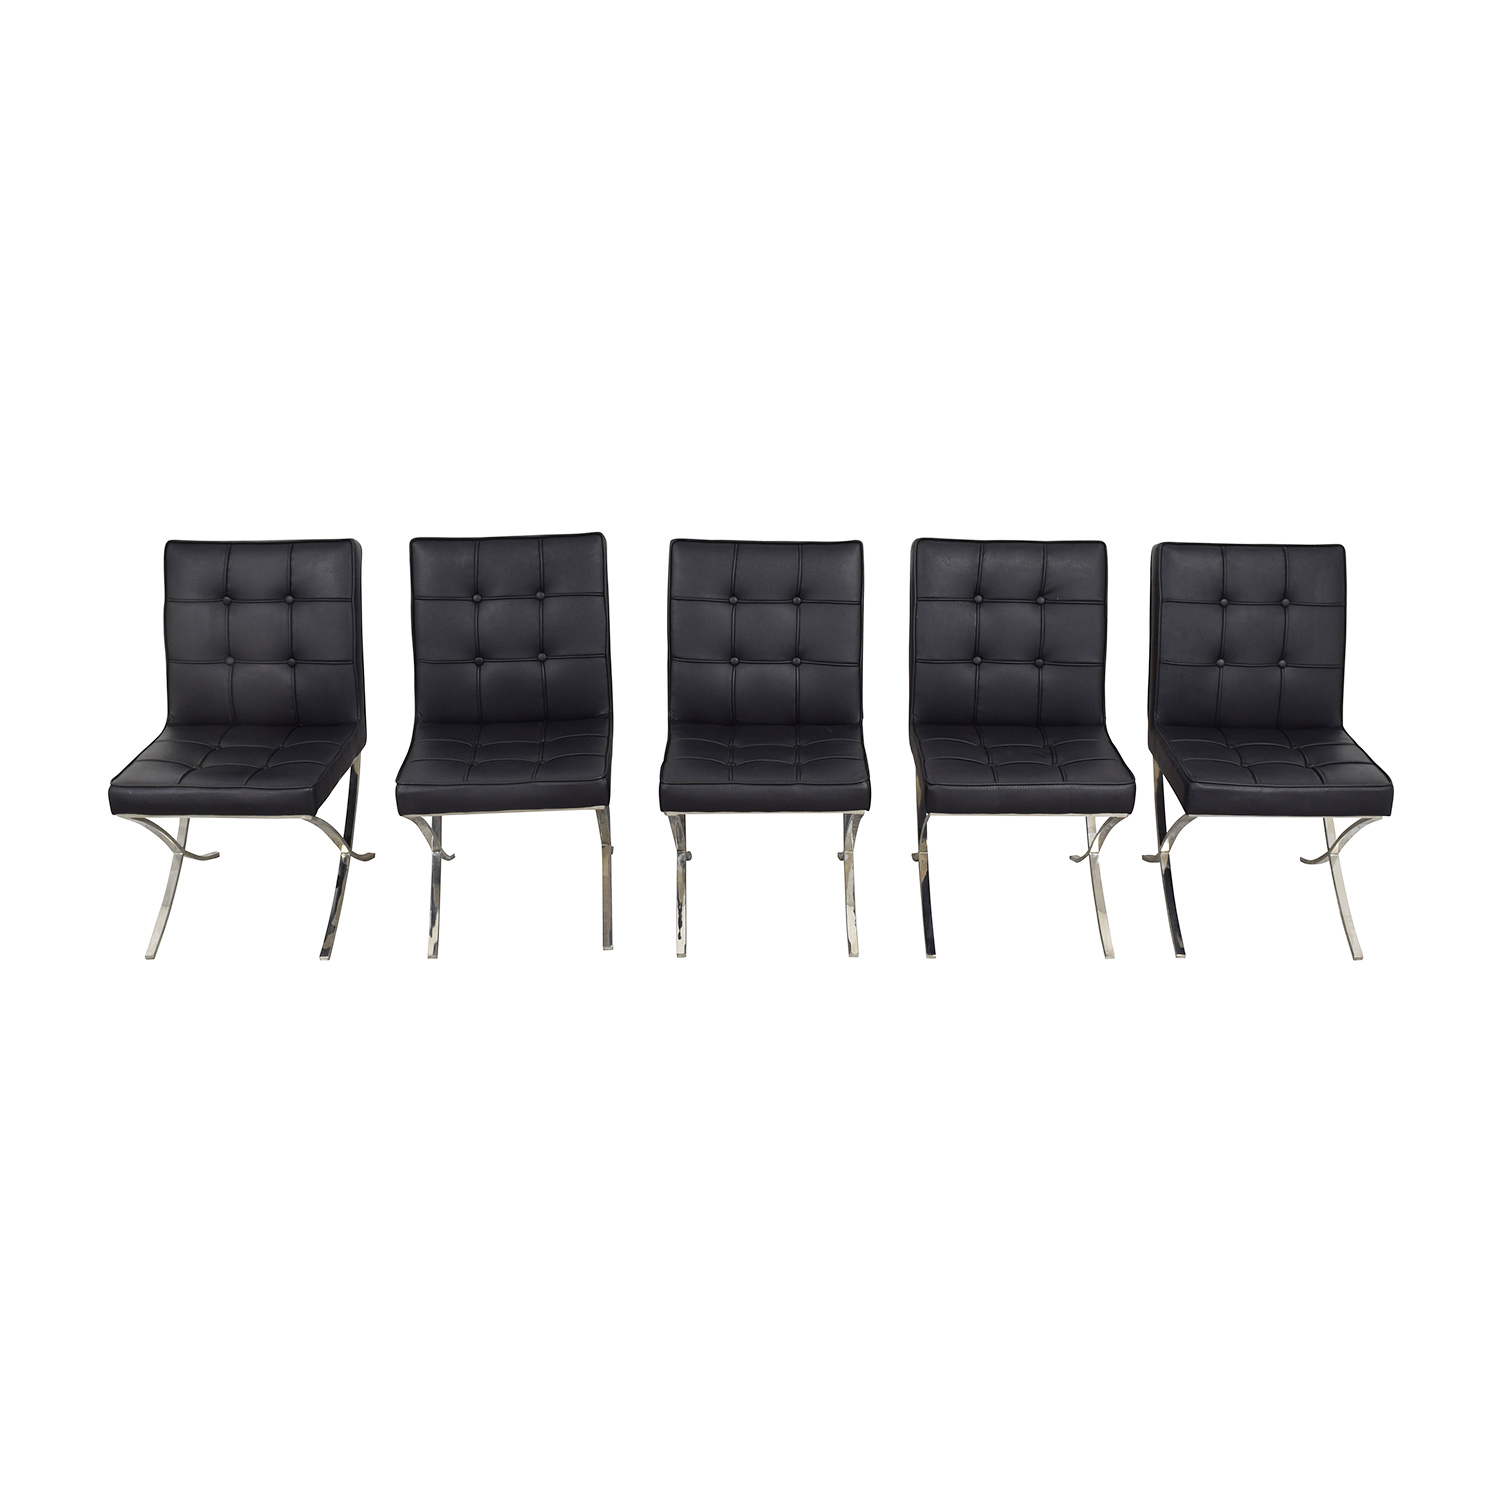 West Elm Black Tufted Leather Chairs sale